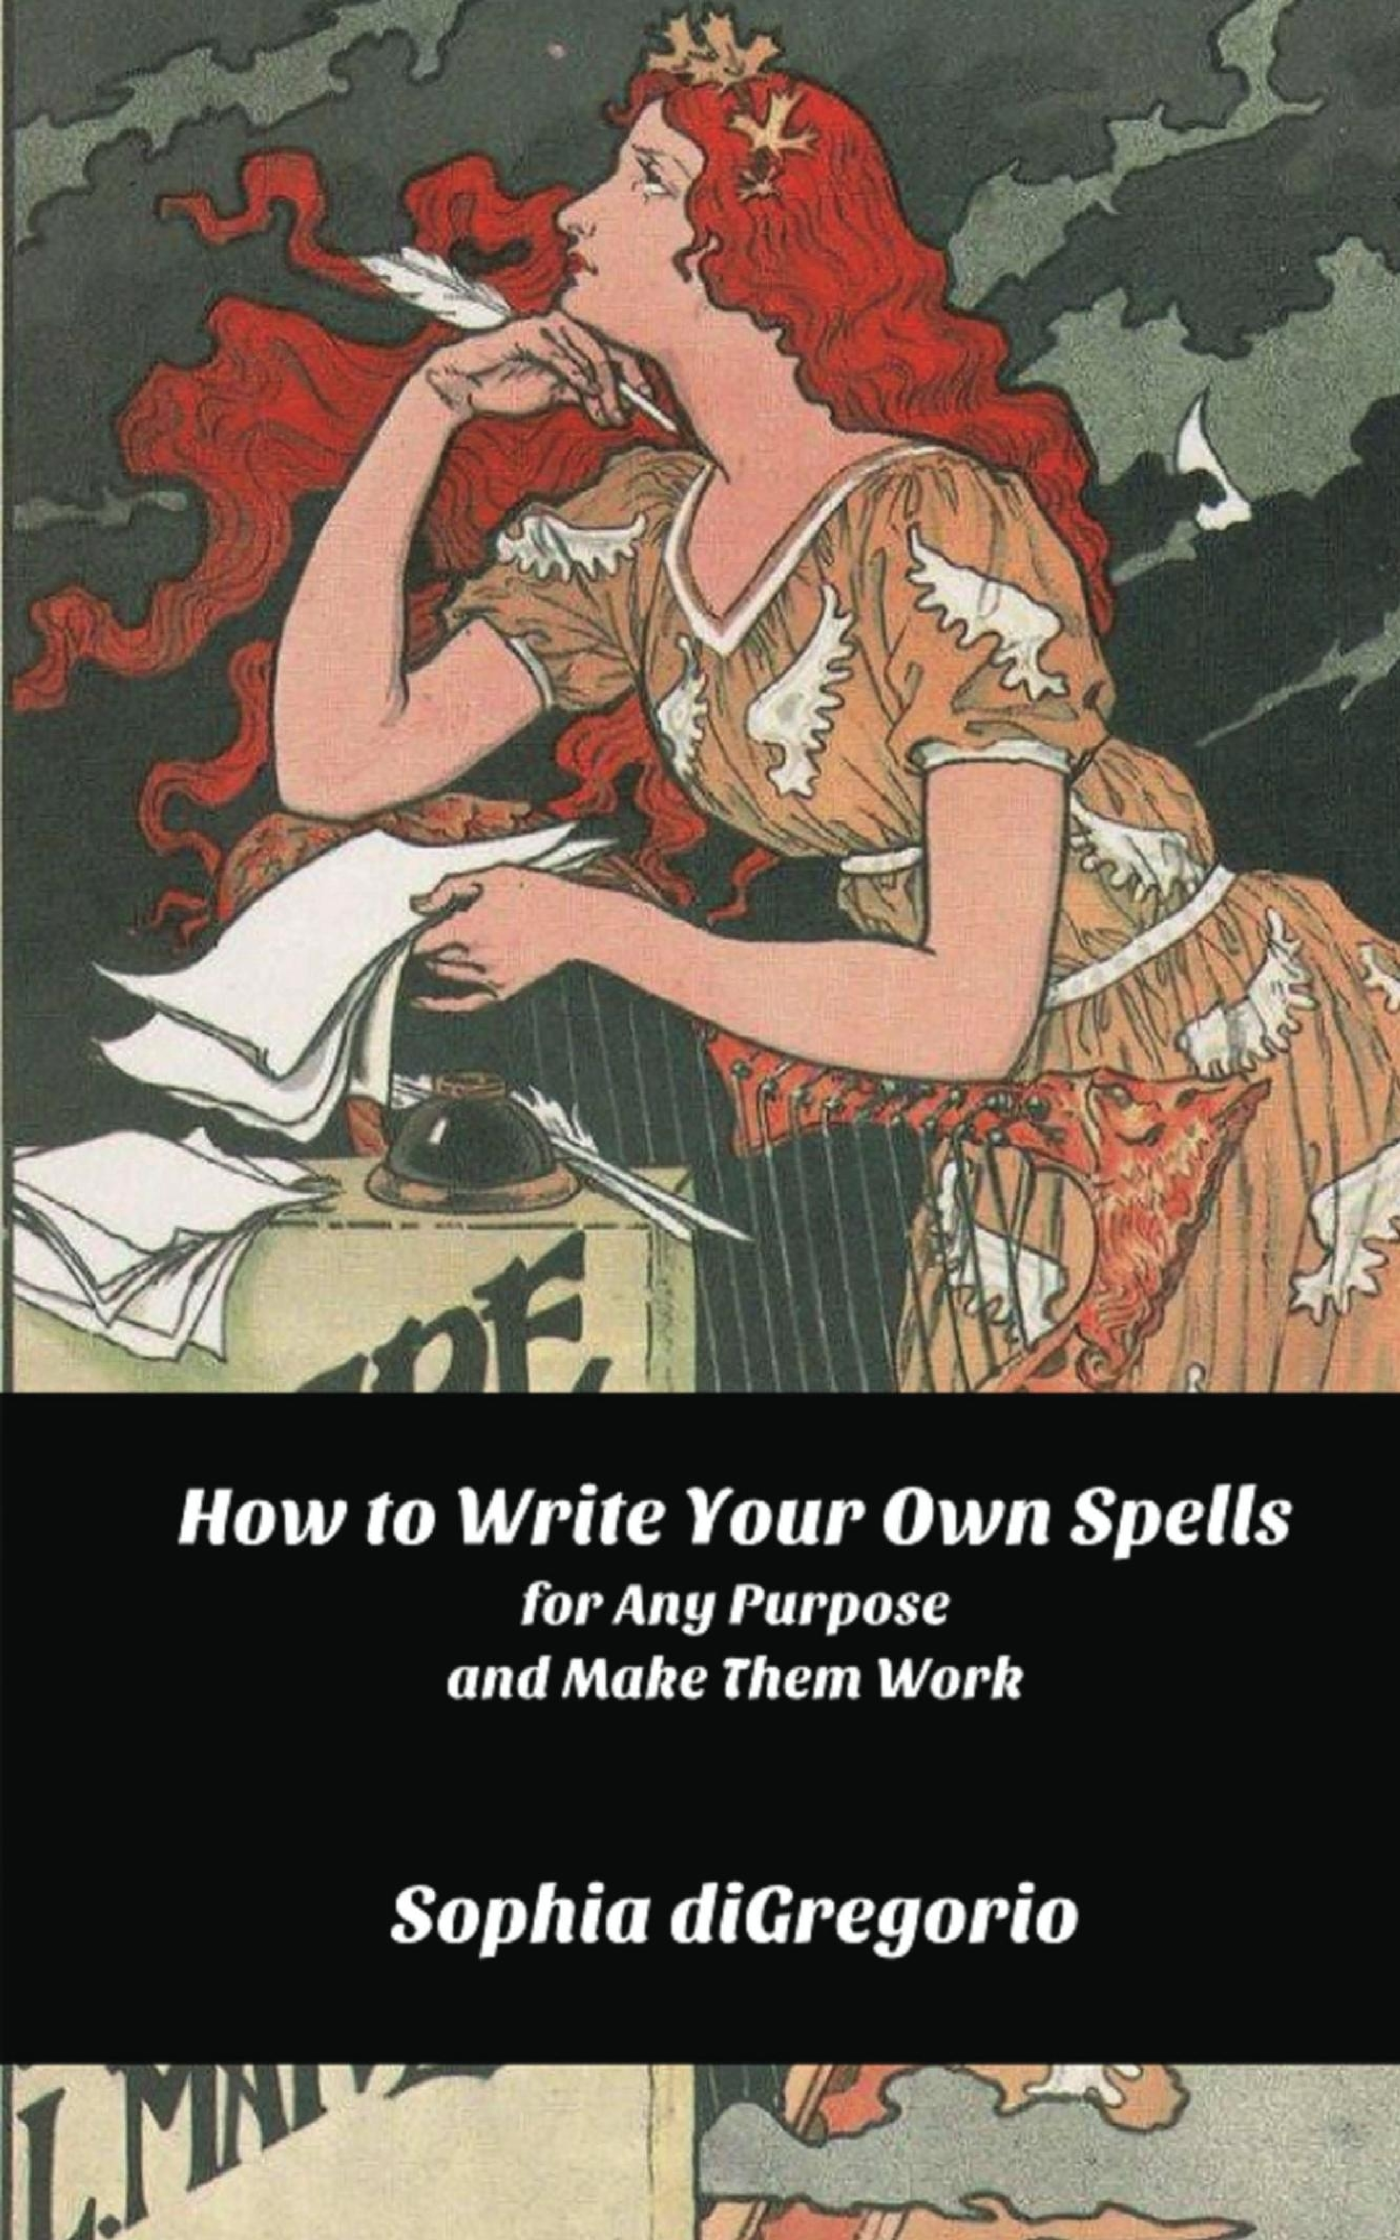 How to Write Your Own Spells for Any Purpose and Make Them Work by Sophia diGregorio